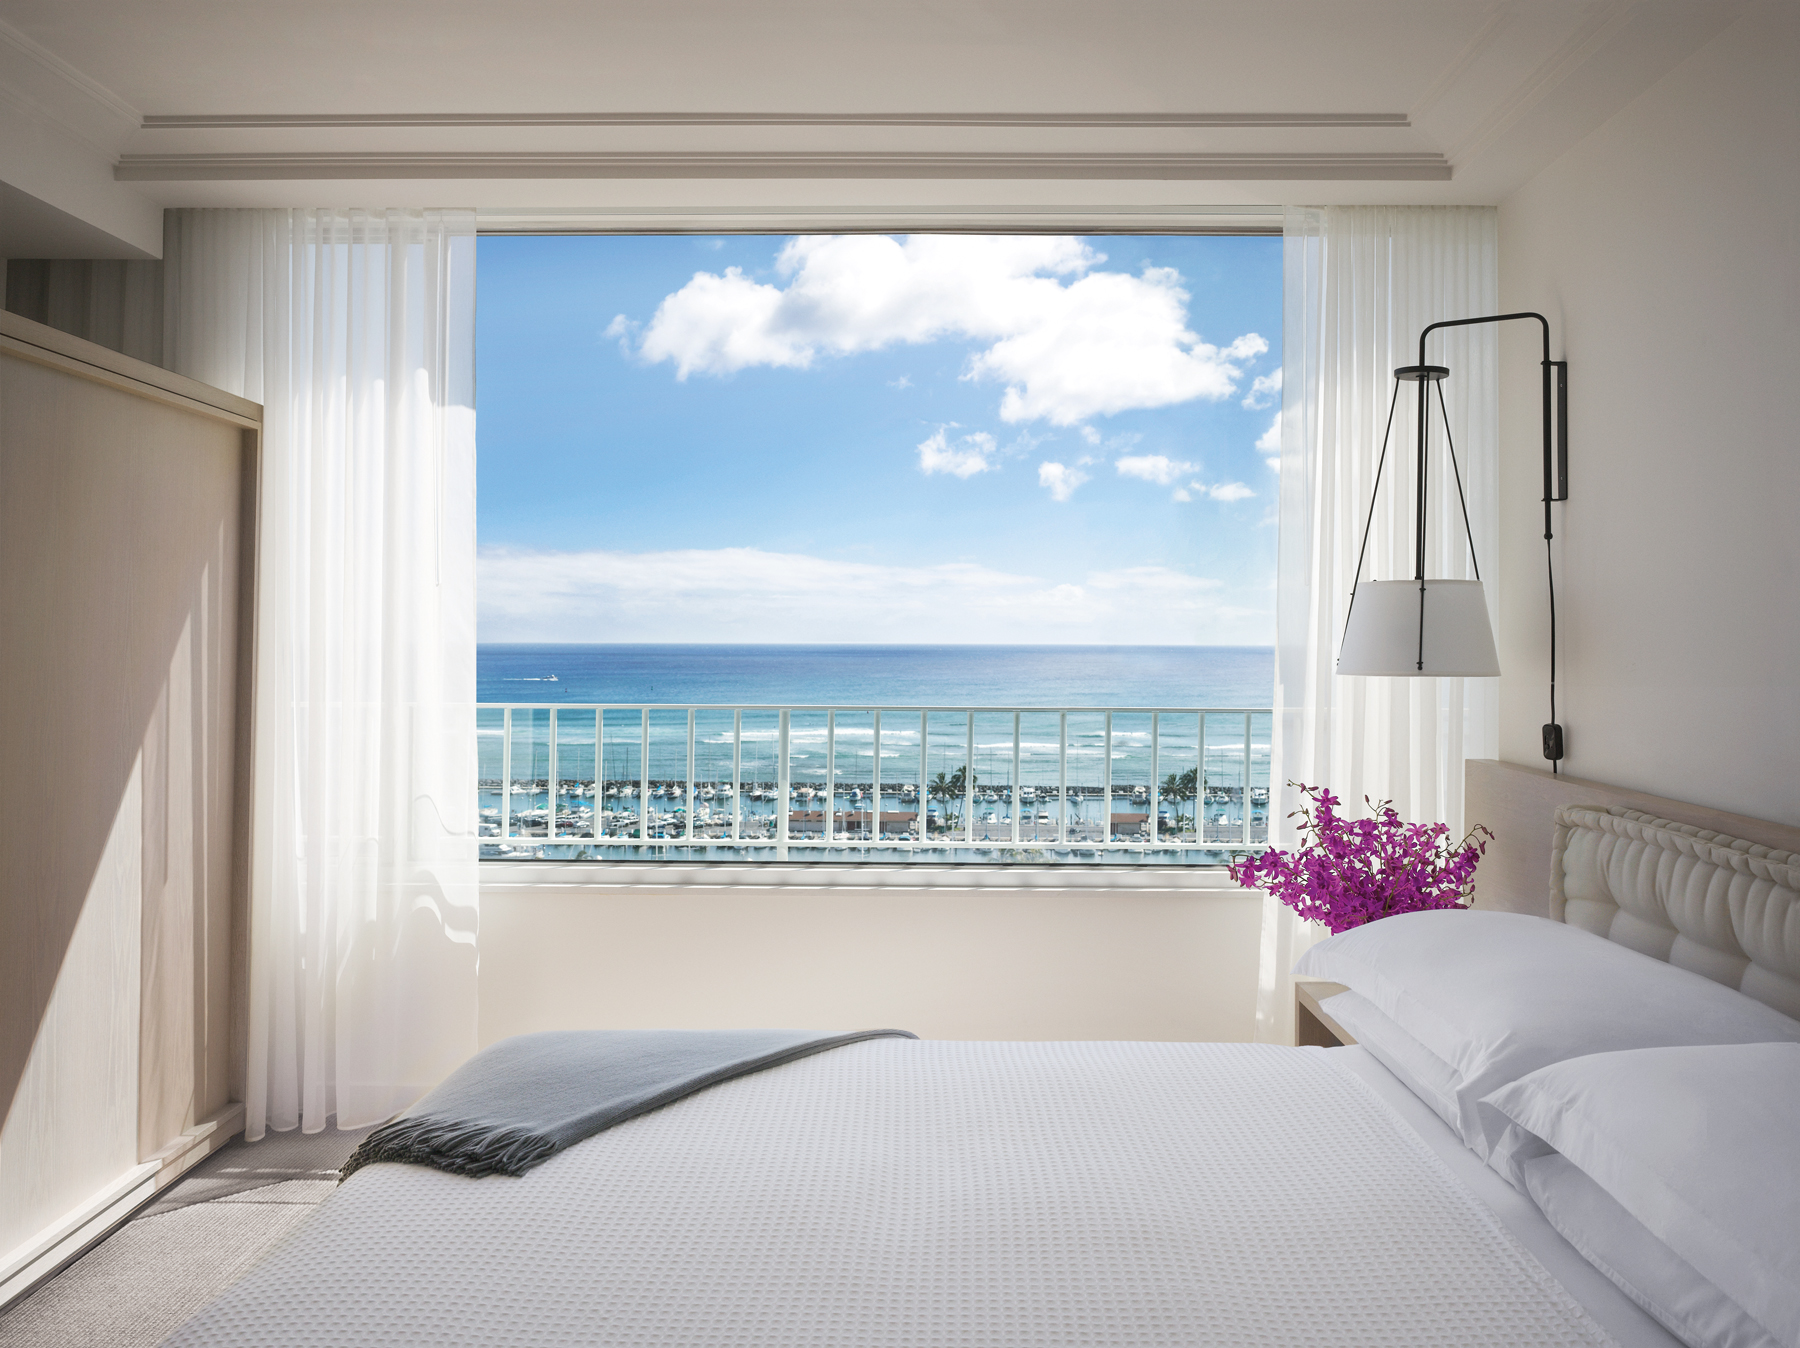 USA-Hawaii-Oahu-The Modern-Ocean Front Suite.jpg